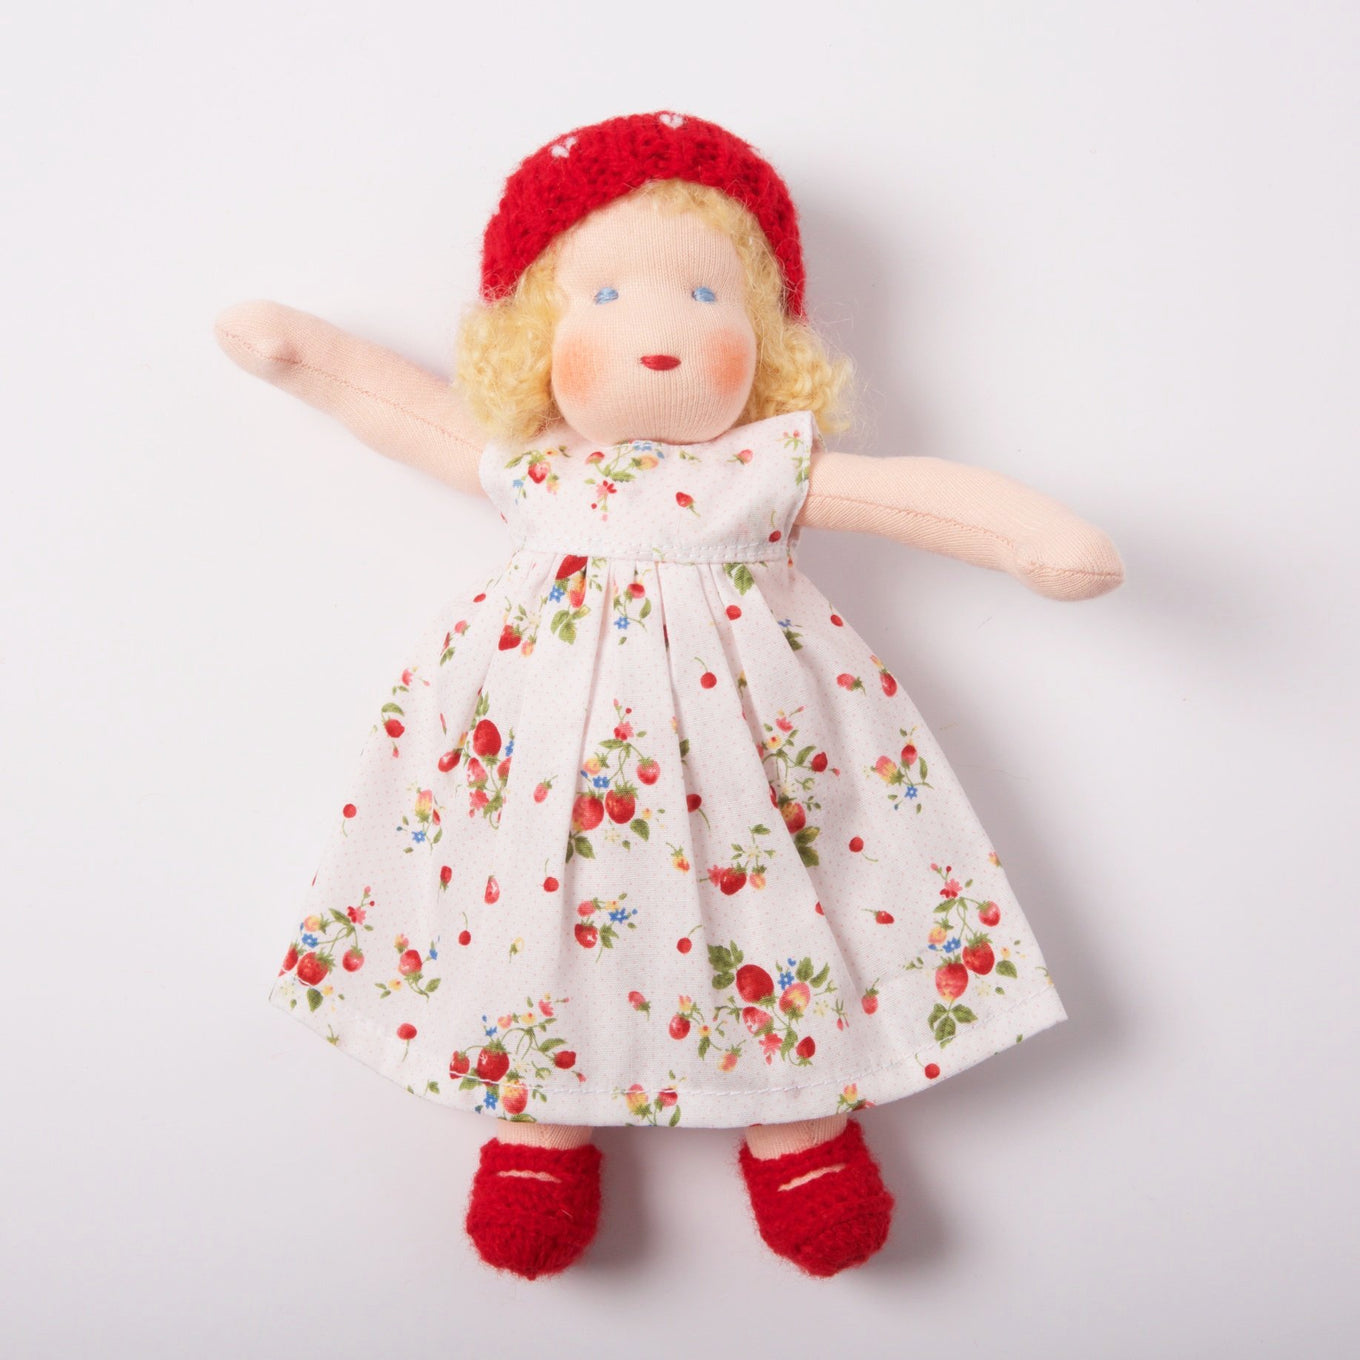 Waldorf Doll Blonde Hair | Red/Cherry